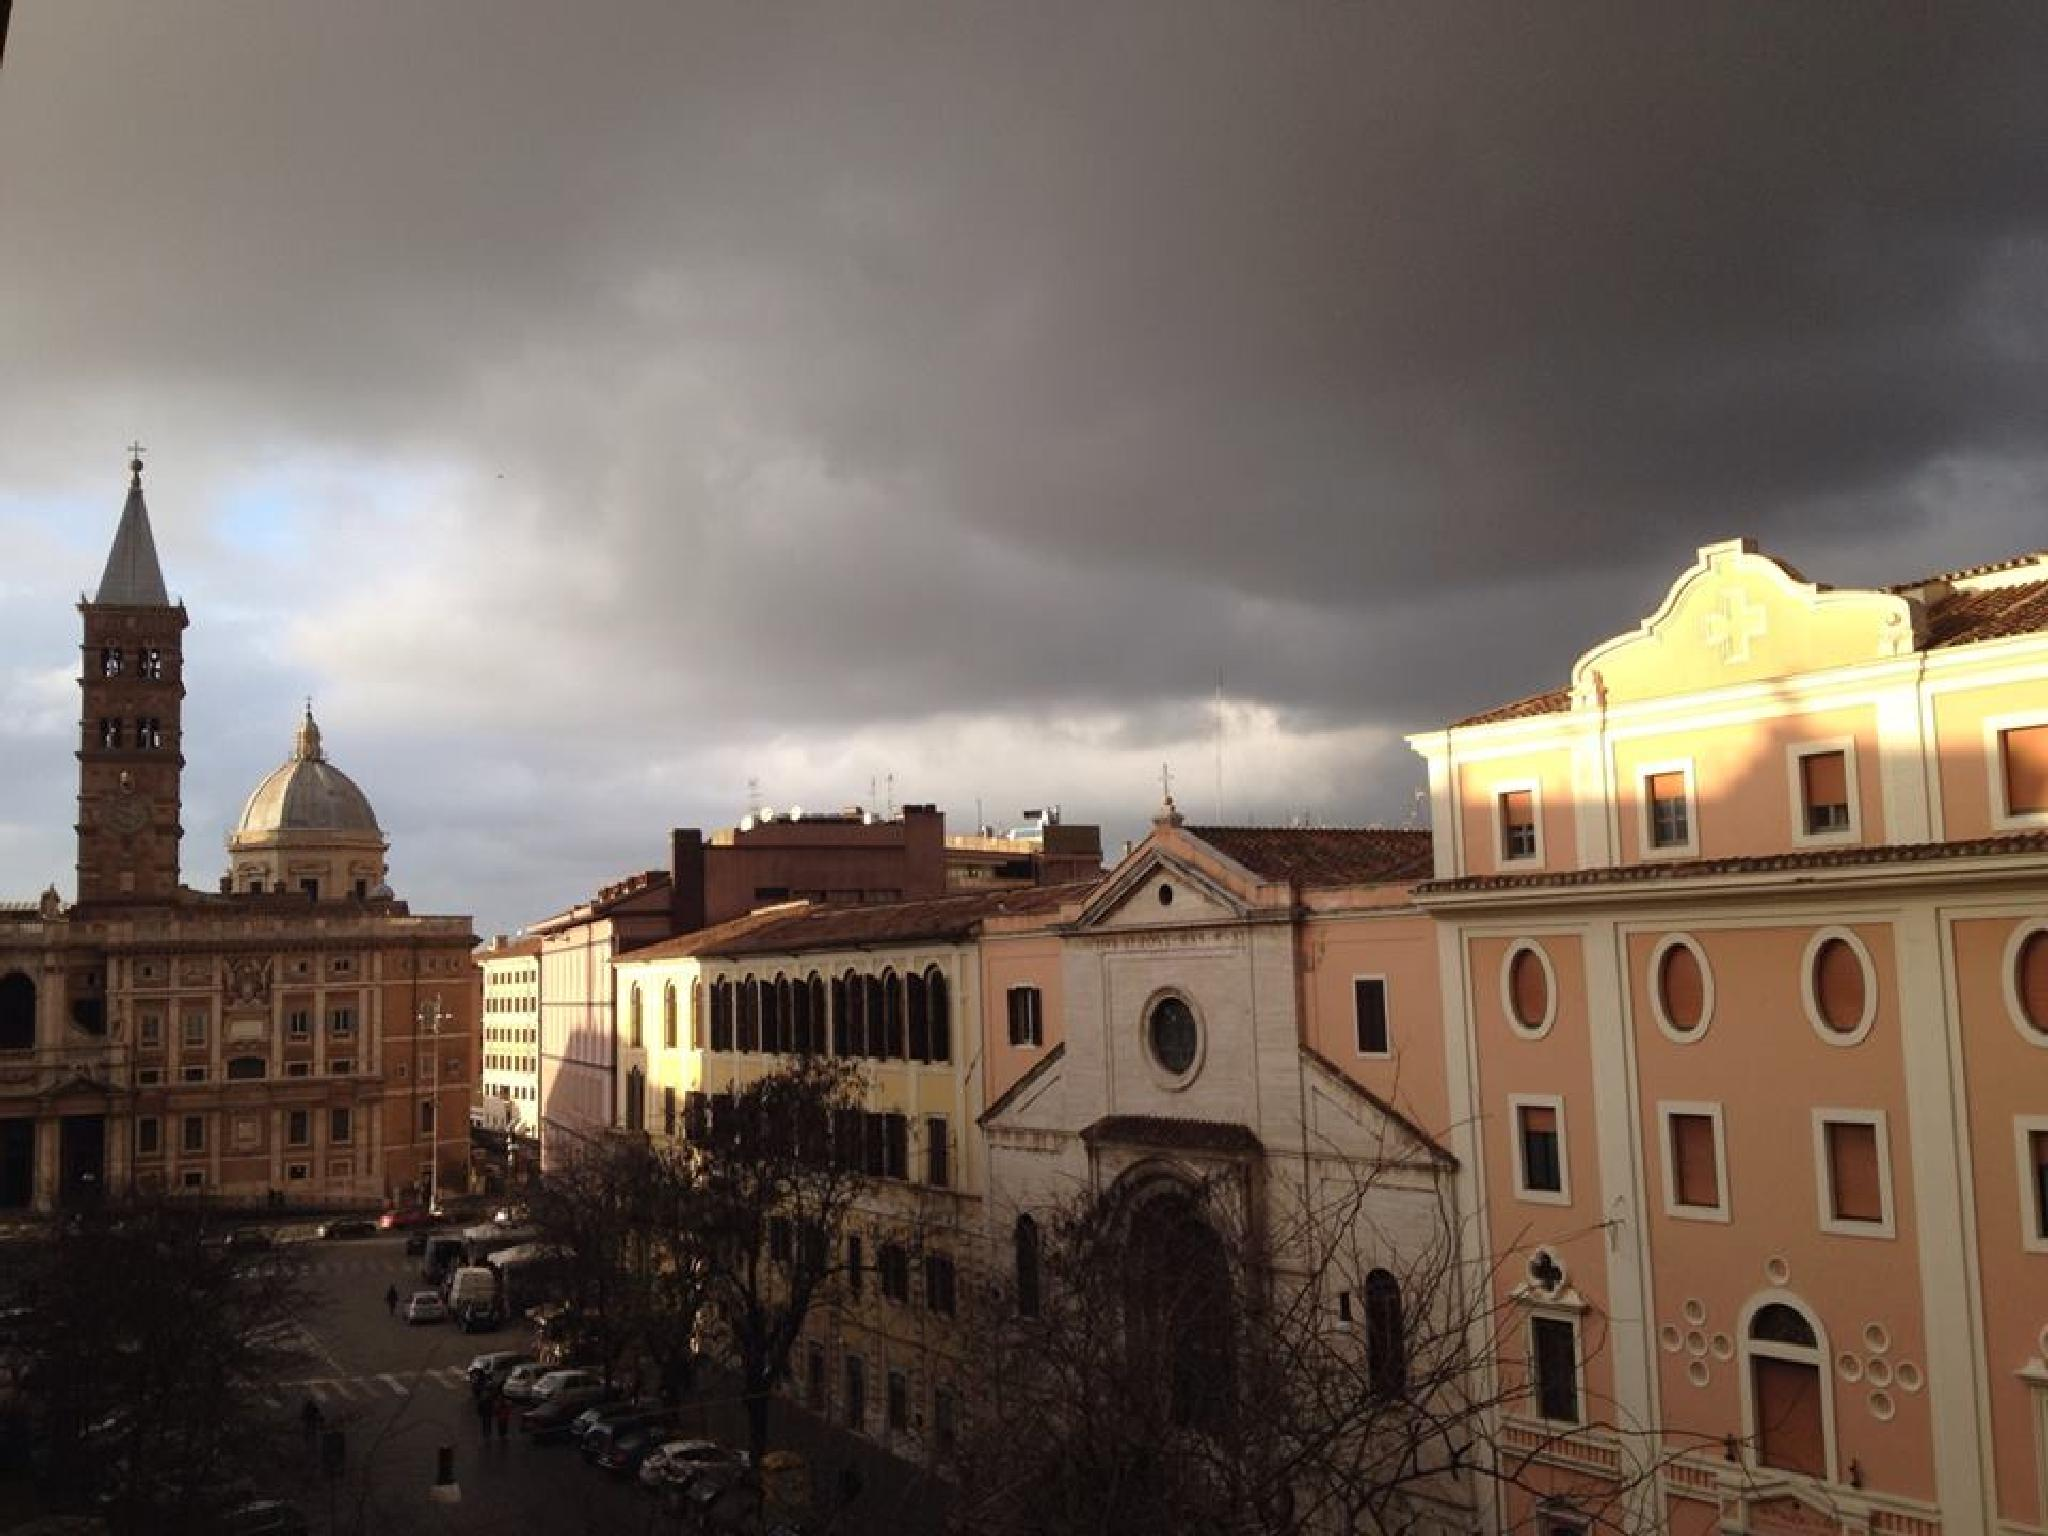 An approaching storm, Rome. by grossiroma